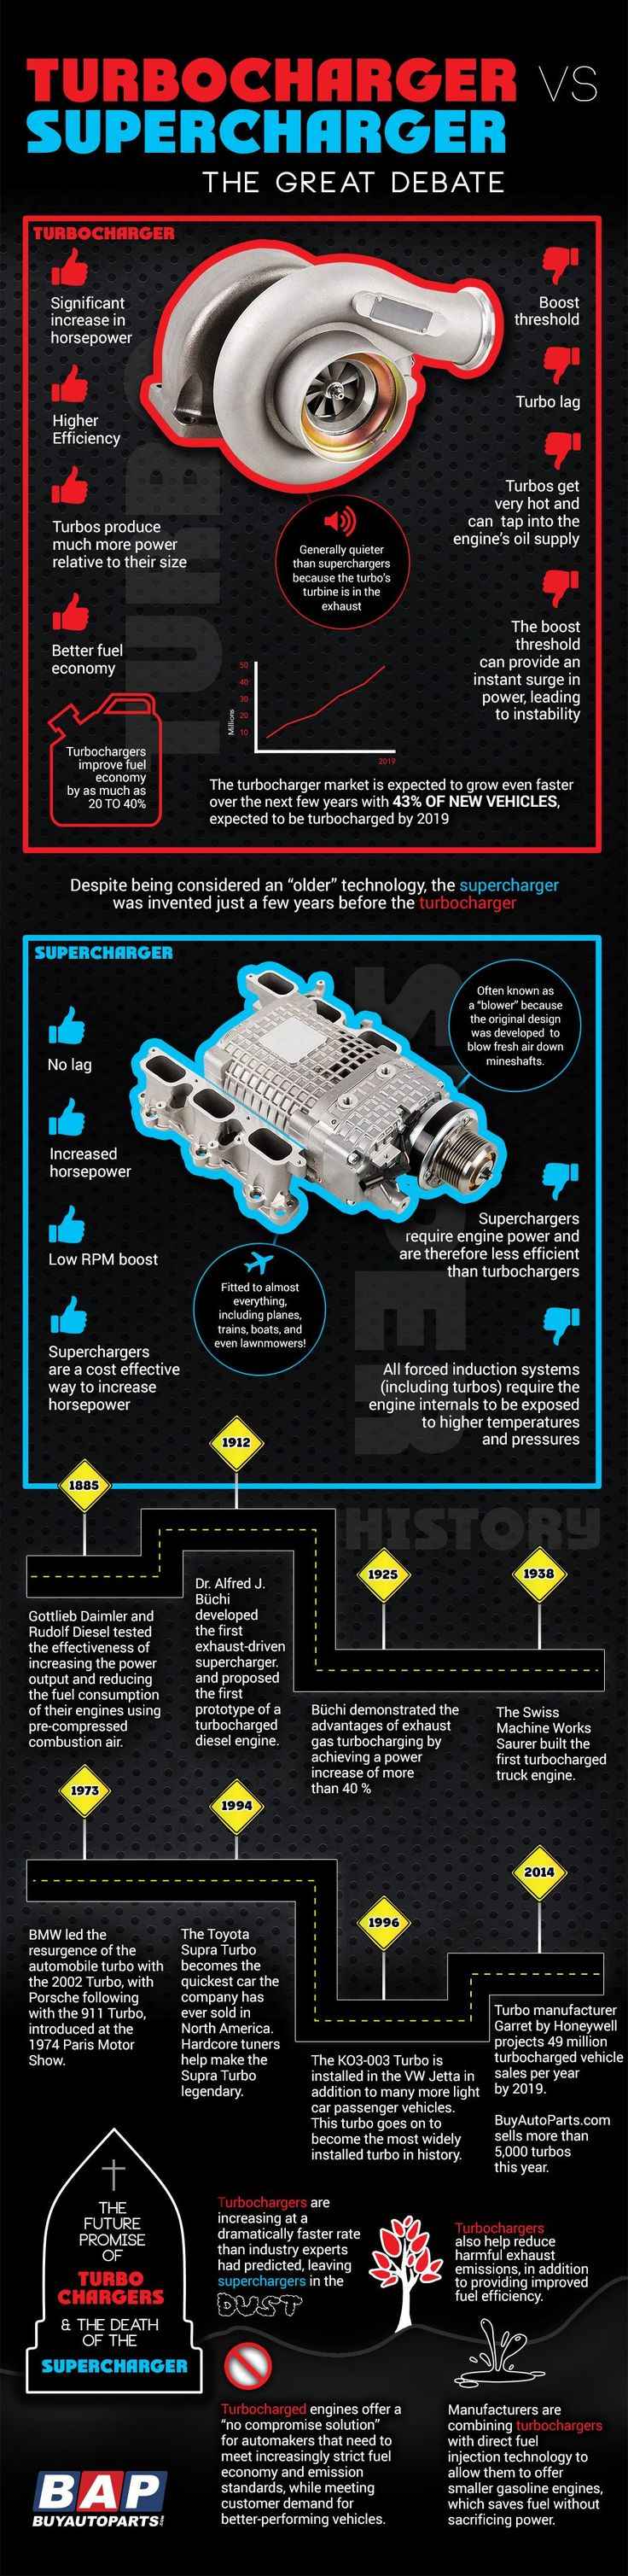 15 Best Cars Images On Pinterest Autos And Car Stuff F430 Can Bus Diagram Turbochargers Vs Superchargers Predicts The Future Of Air Induction Cartuning